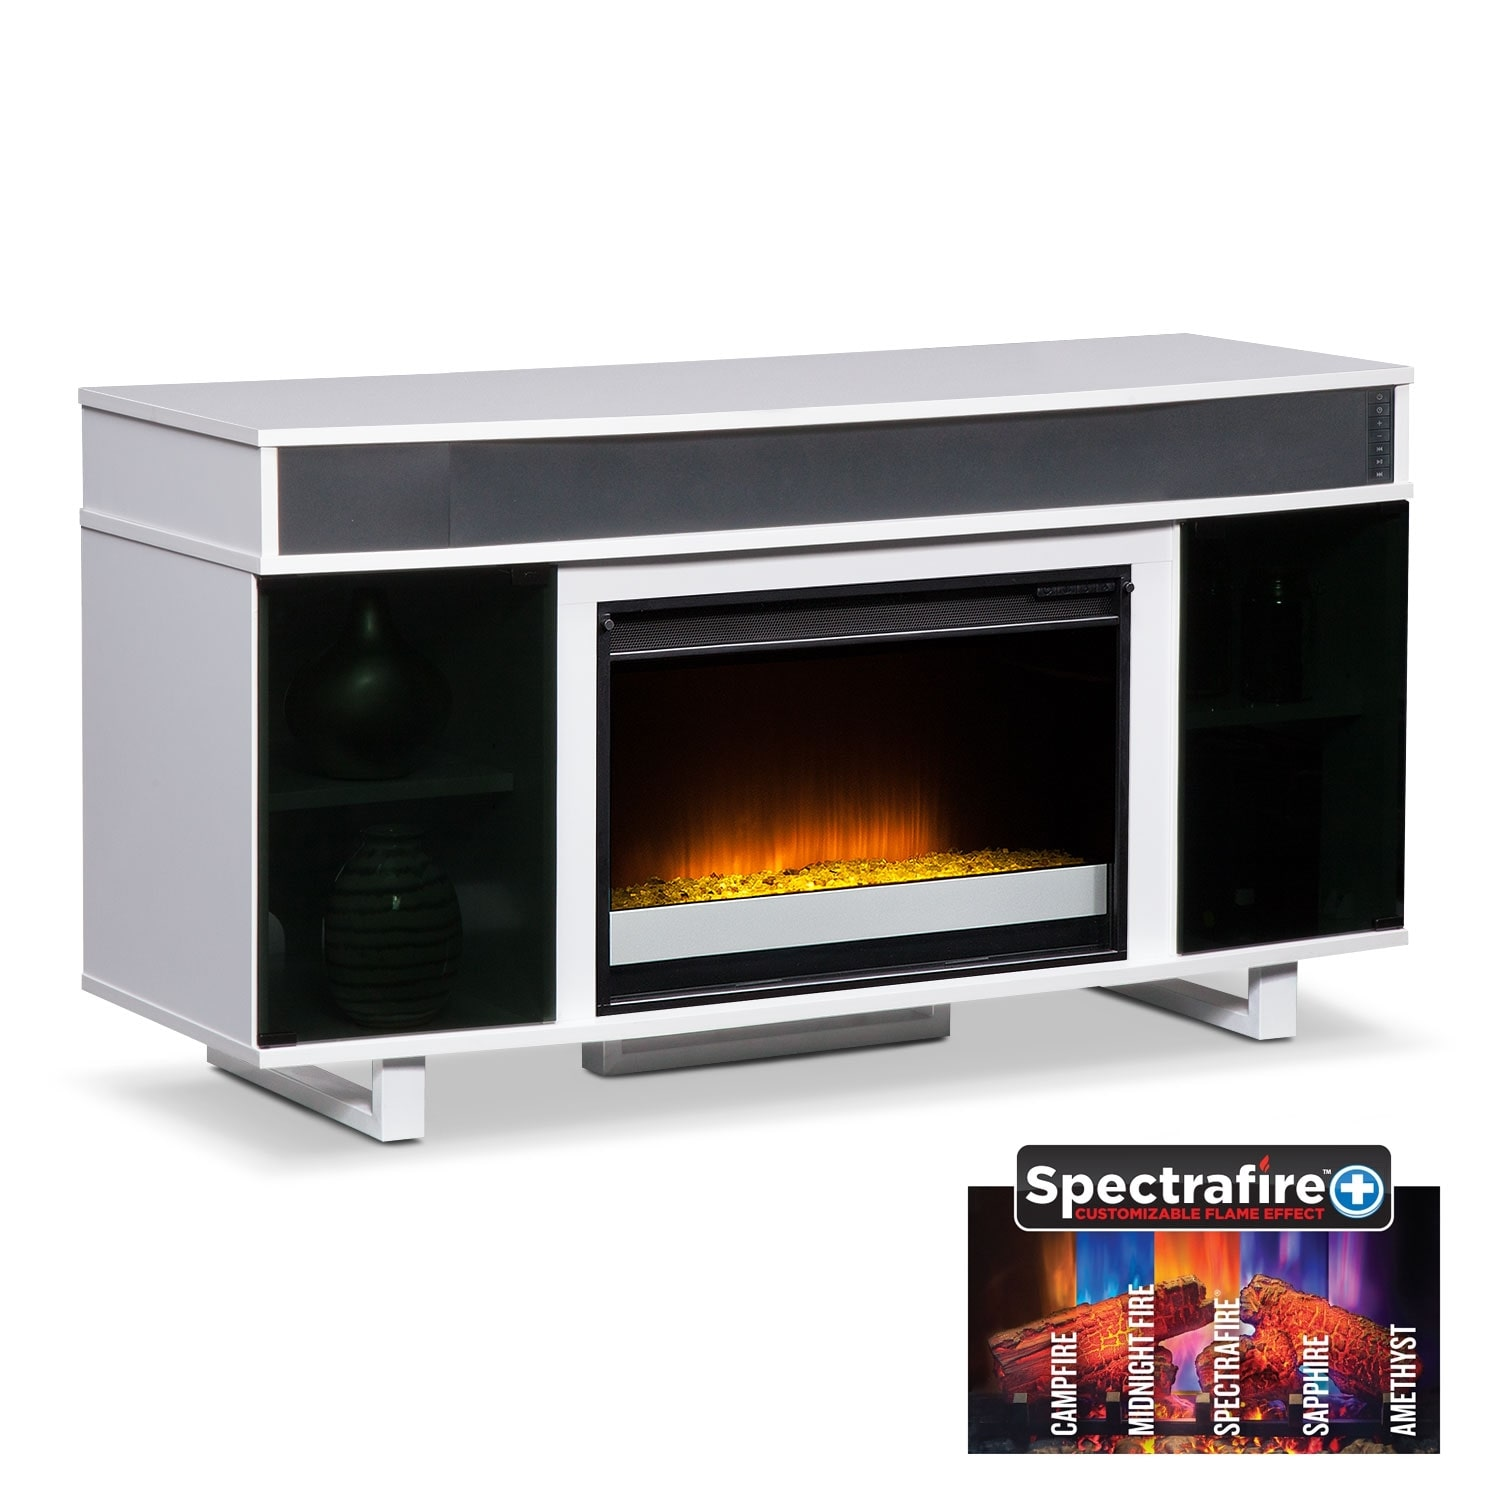 contemporary fireplace tv stand with sound bar  white hover to zoom. pacer  contemporary fireplace tv stand with sound bar  white